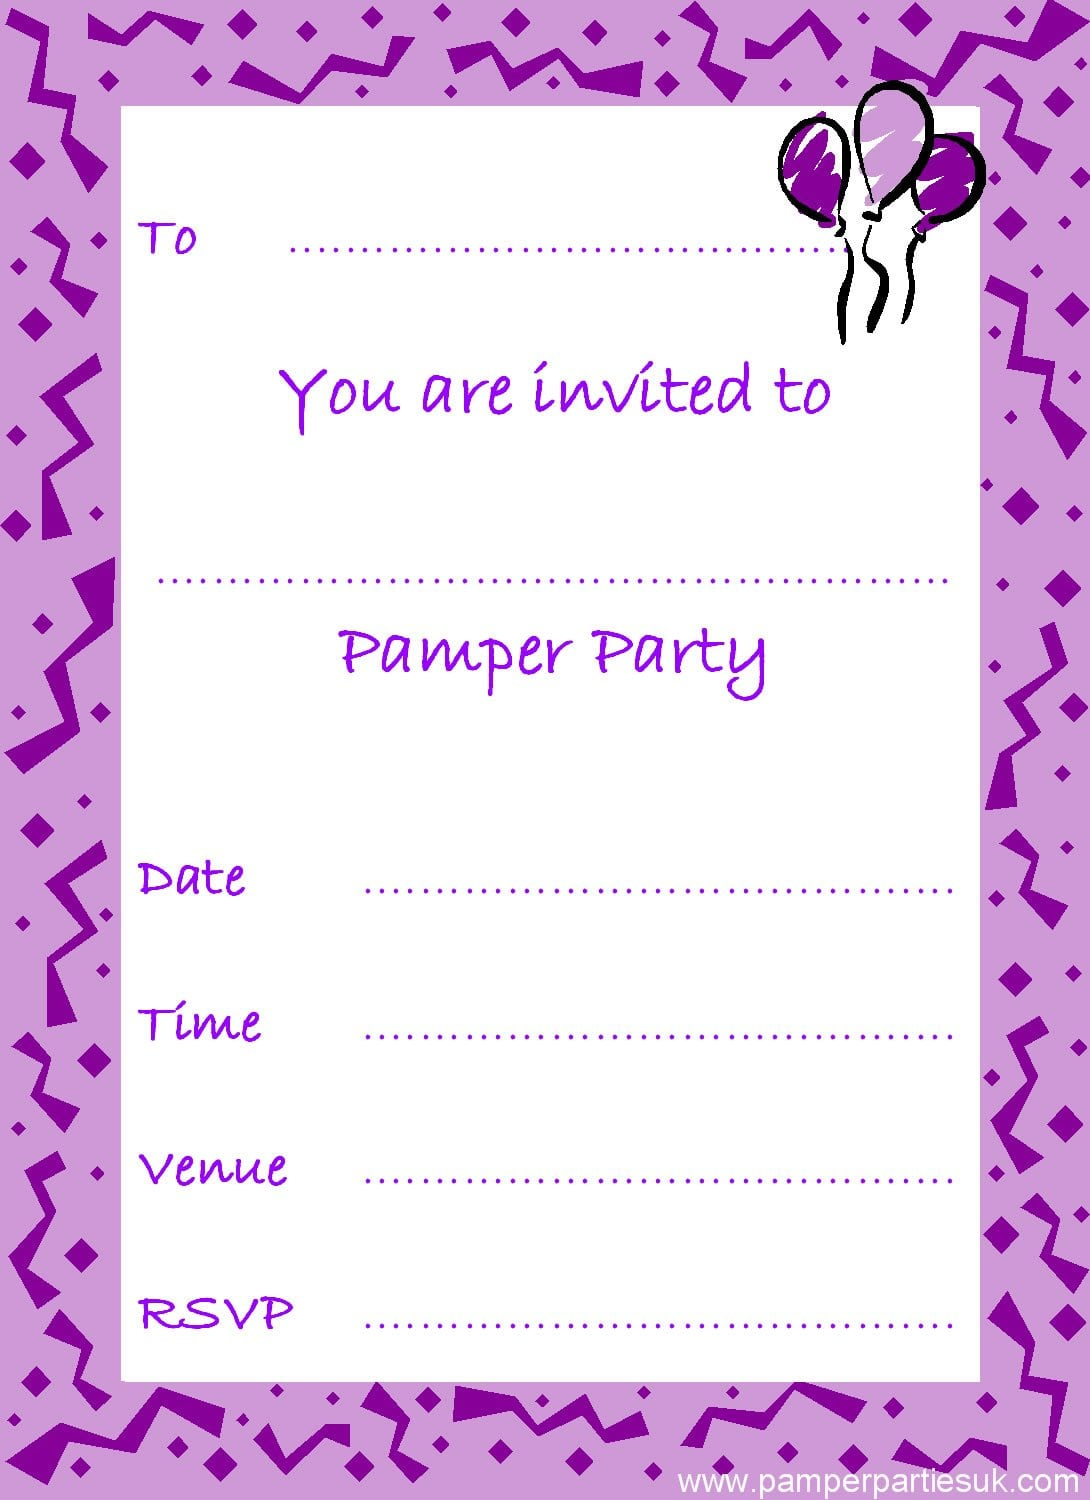 Free Printable Pamper Party Invitations B4shxSZb